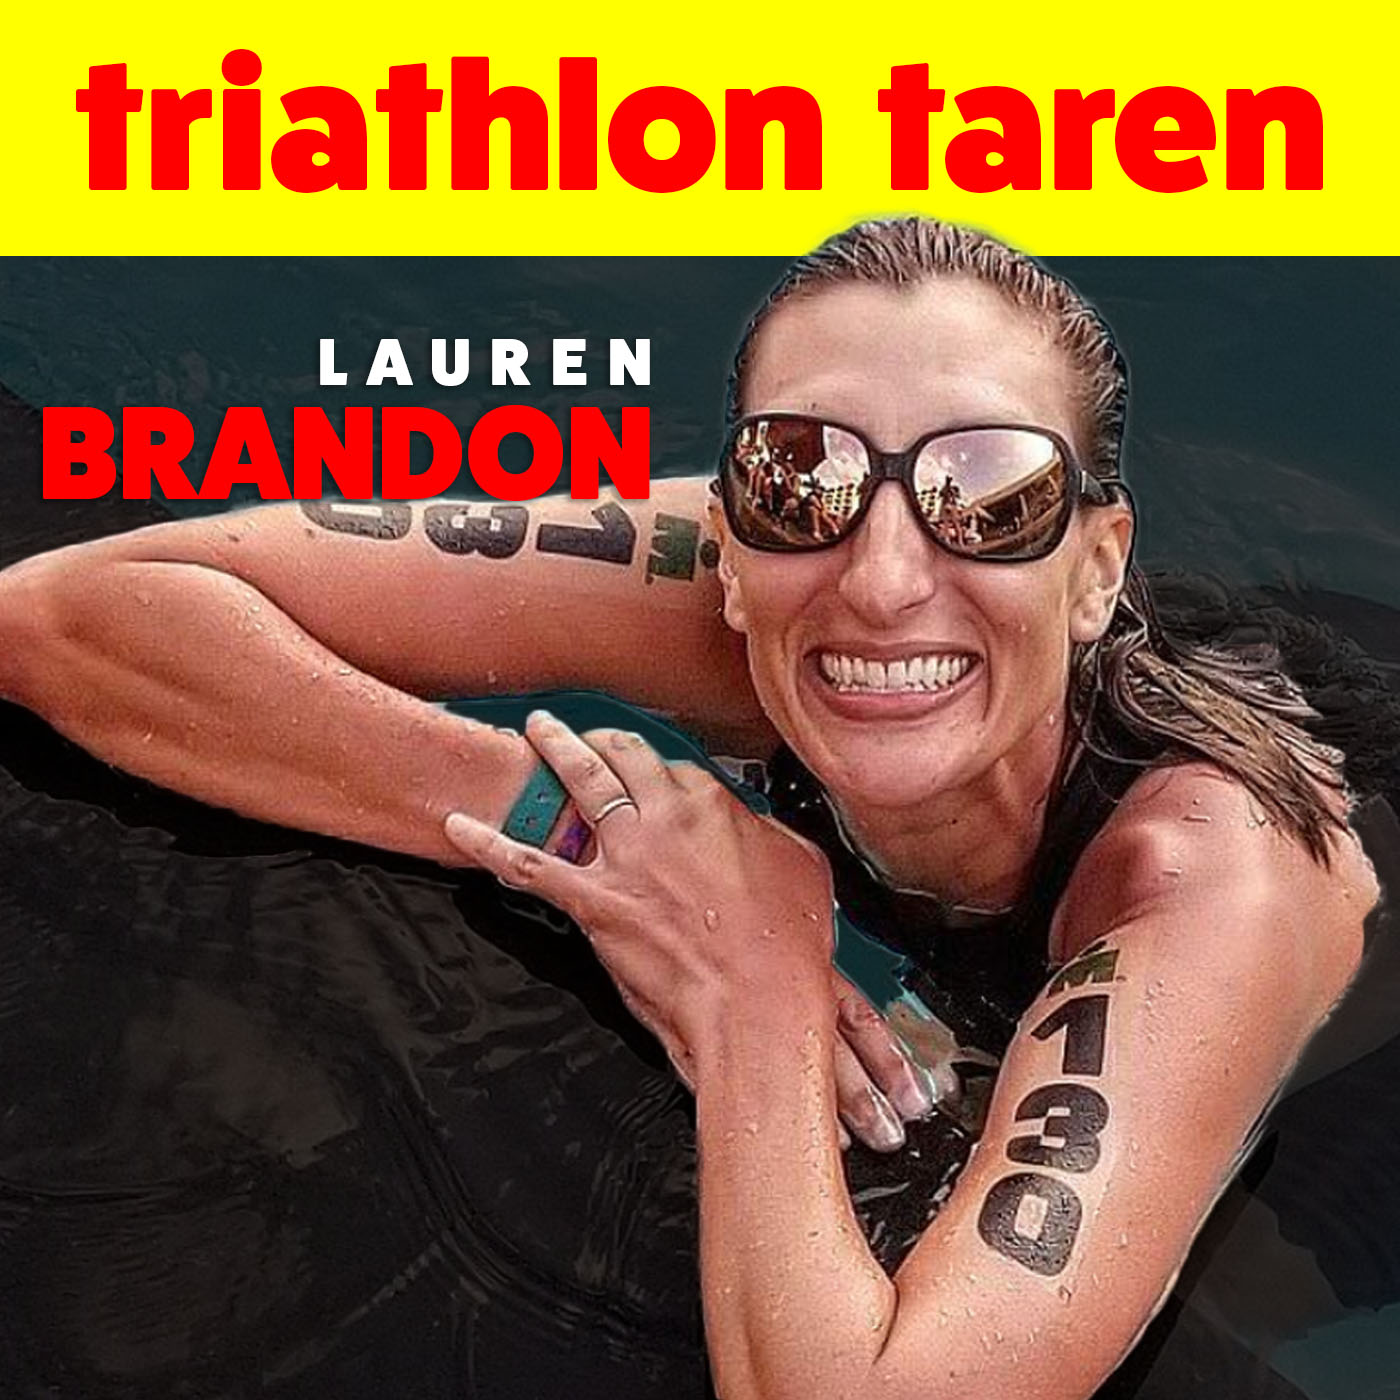 Lauren Brandon | 2nd out of the water in Kona, Faster than Pro Men, and being coached by a spouse